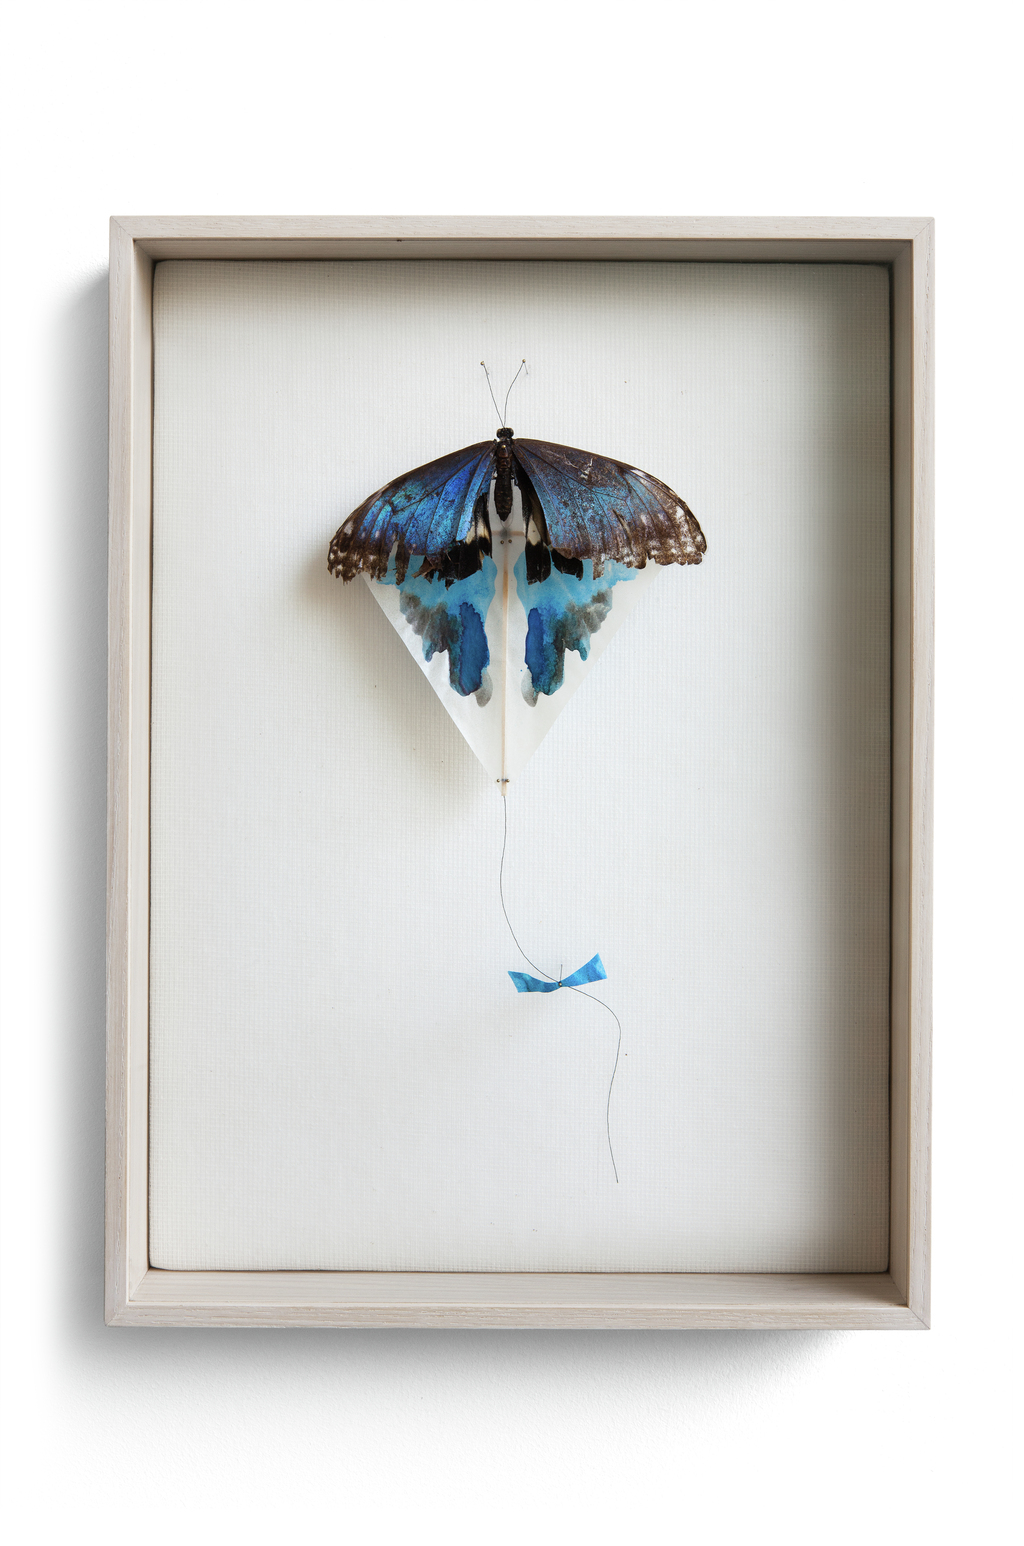 """Blue spot kite"" is attached to a paper kite and the missing wings are spots made of ink. (w:26 h:35 d: 5.5 cm)"